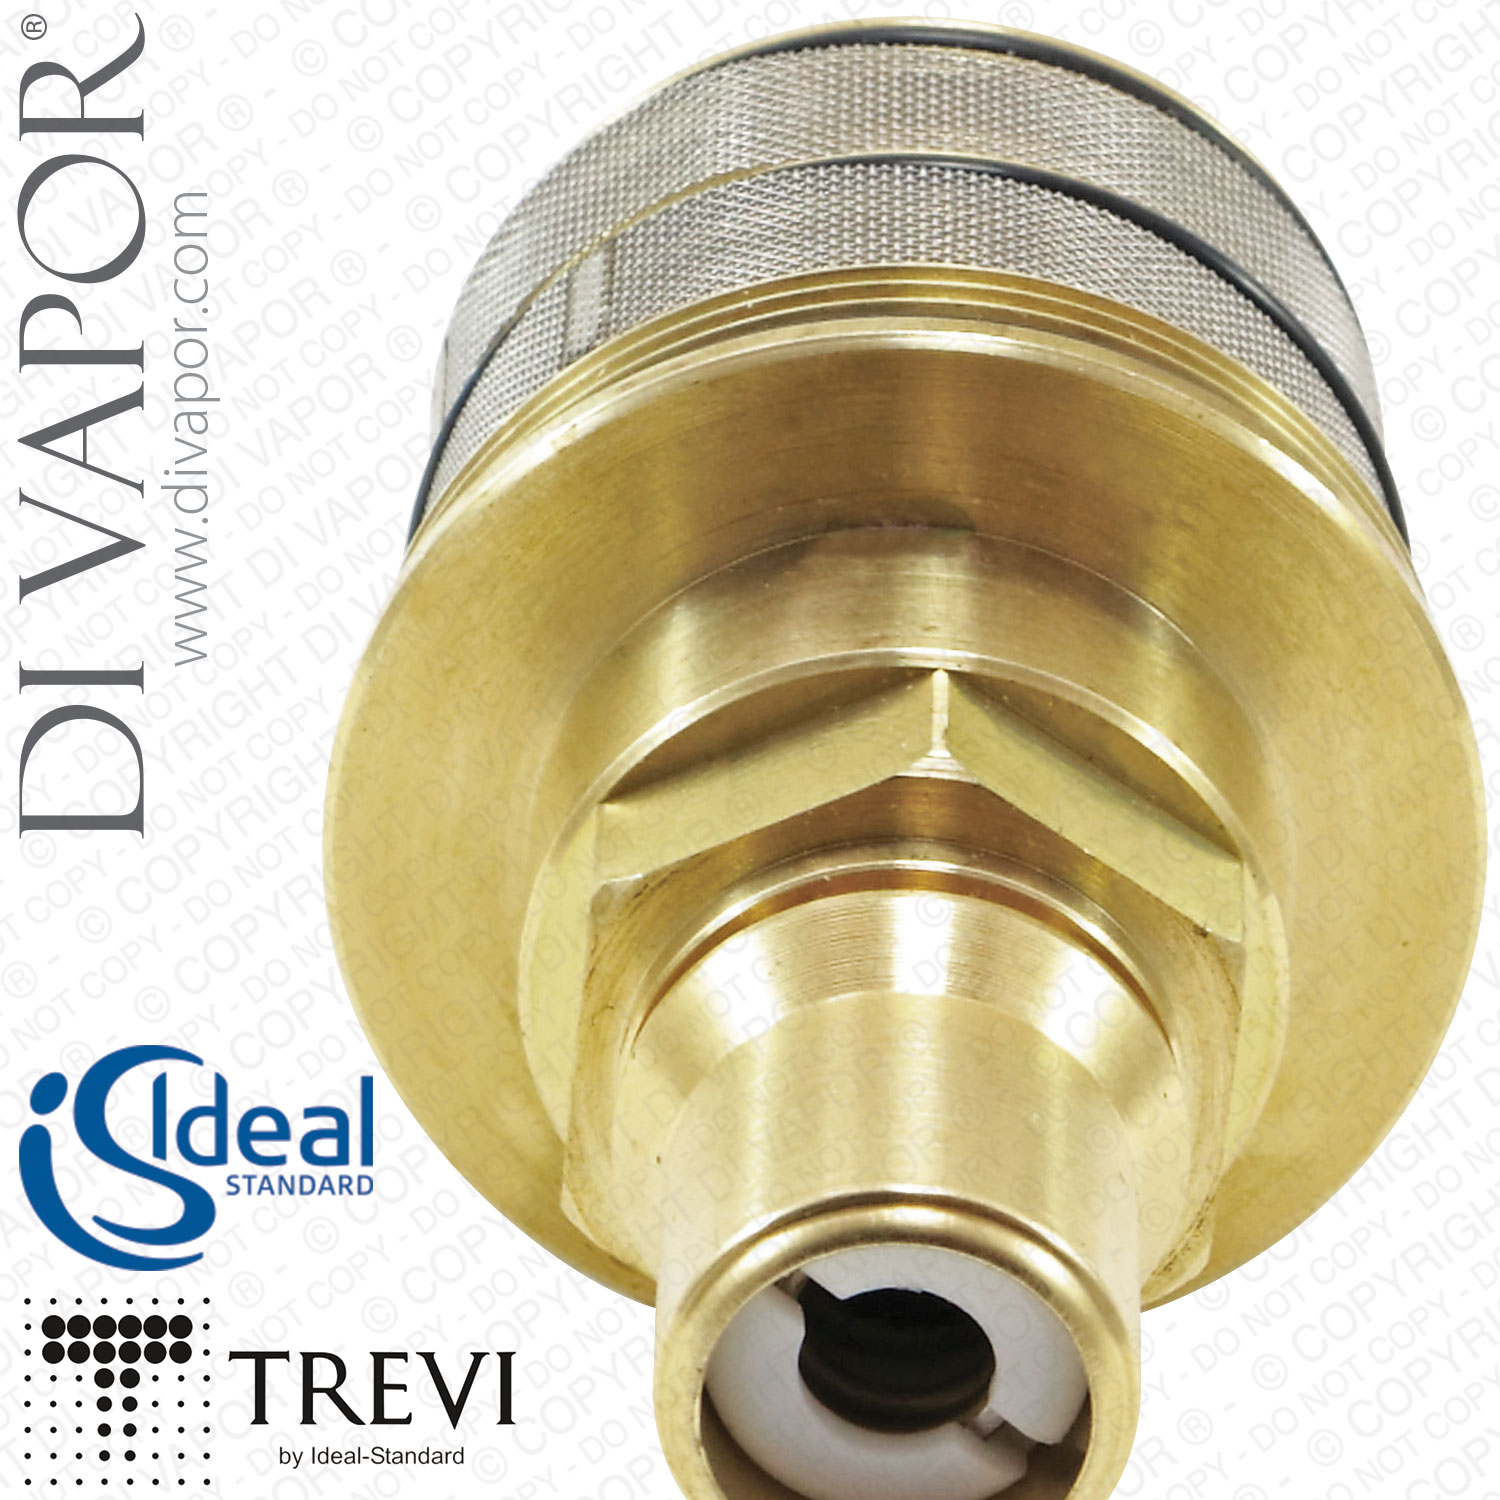 Trevi S960134nu Thermostatic Cartridge For Trevi Therm